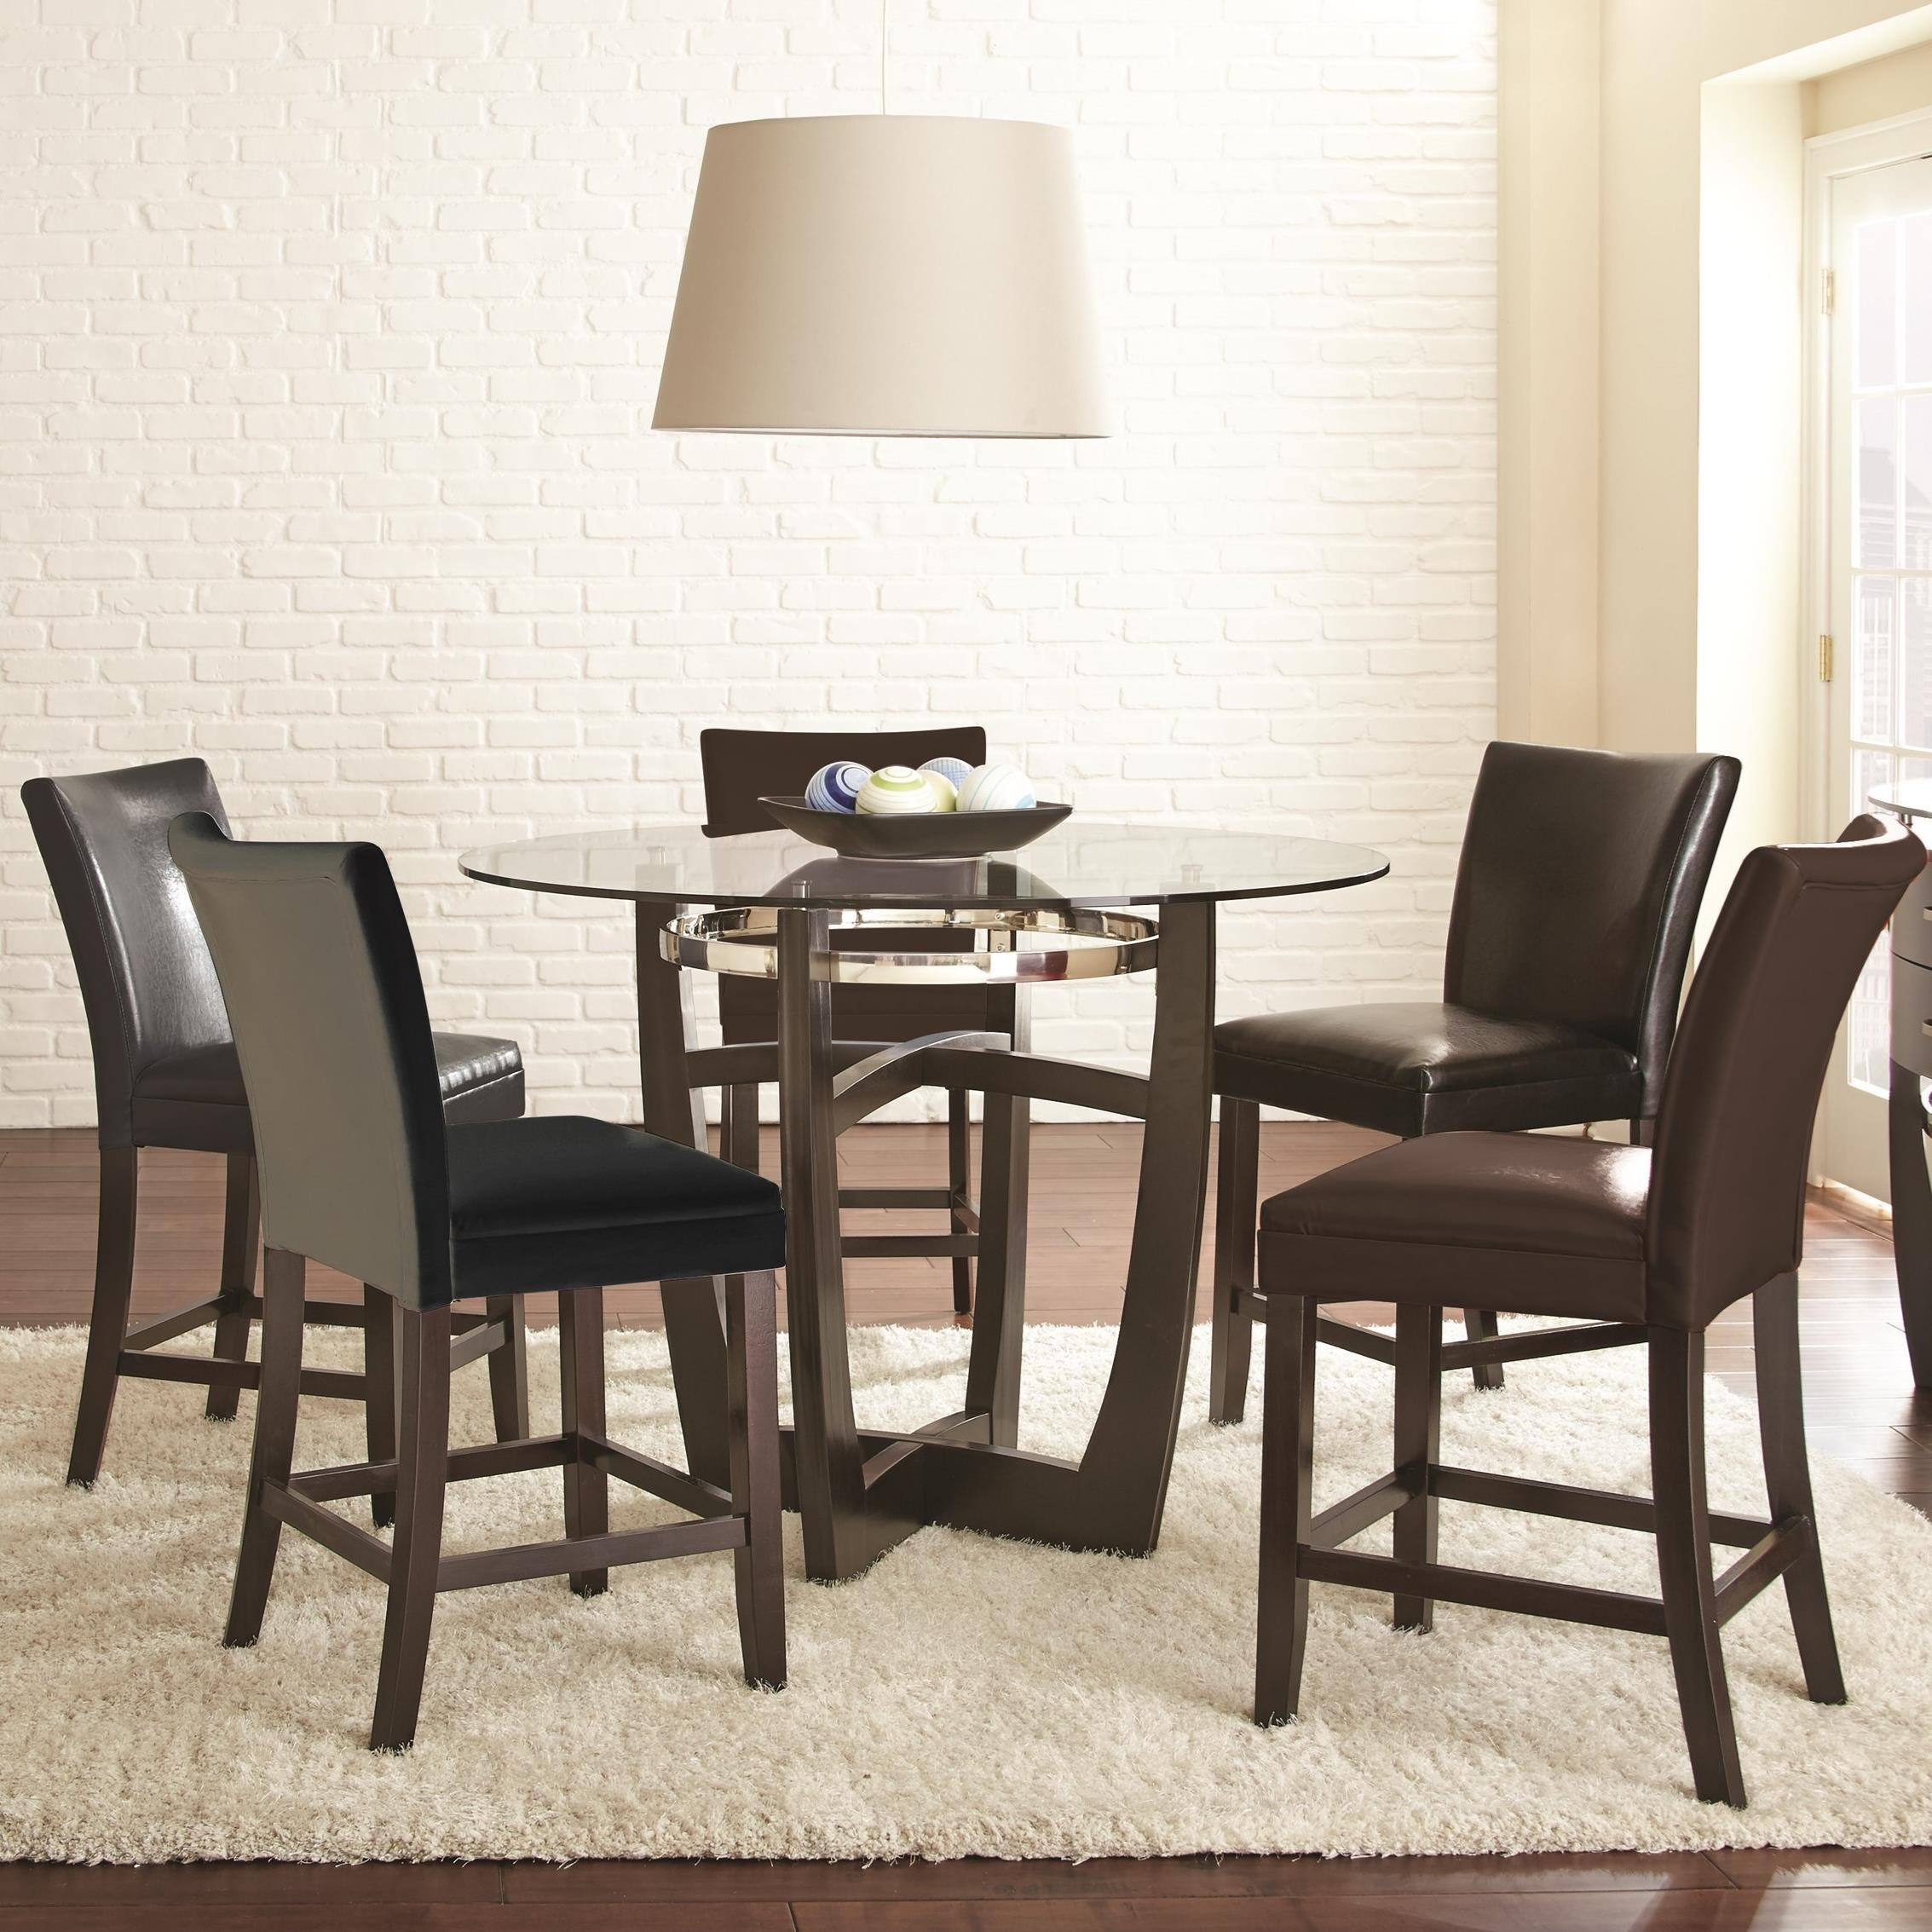 6 chair dining set ebay accent chairs steve silver matinee piece counter height